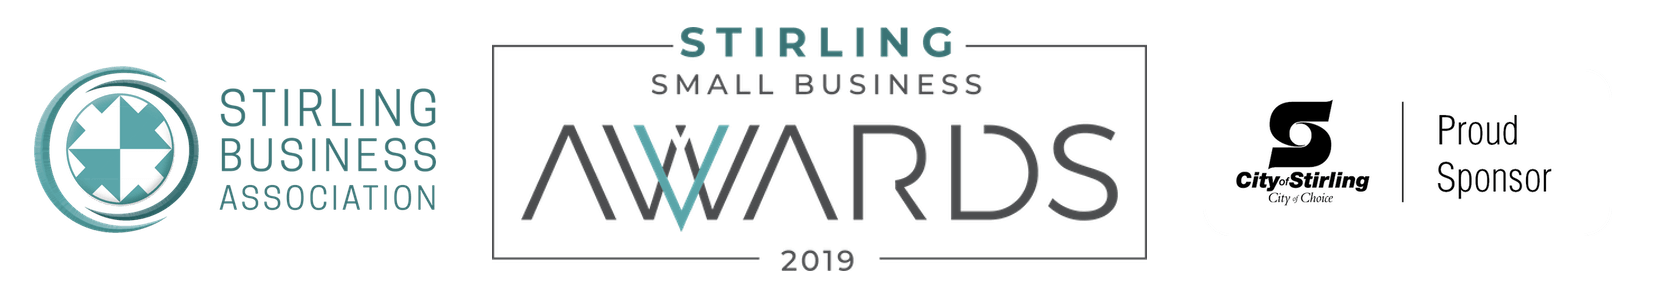 Stirling Small Business Awards 2019